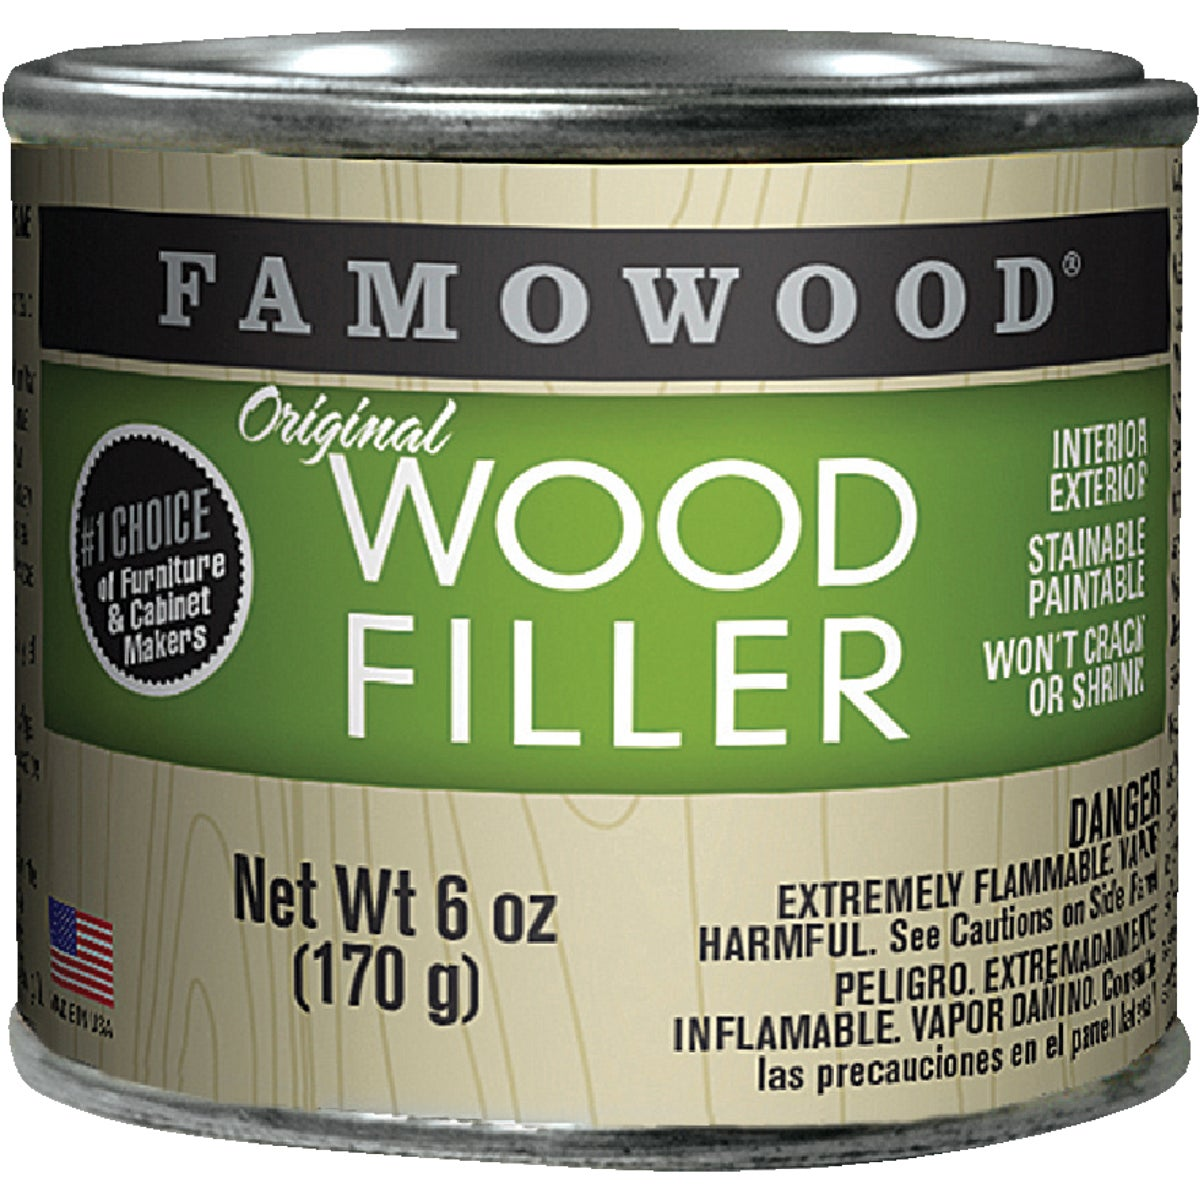 1/4PT WALNUT WOOD FILLER - 36141142 by Eclectic Prod Inc